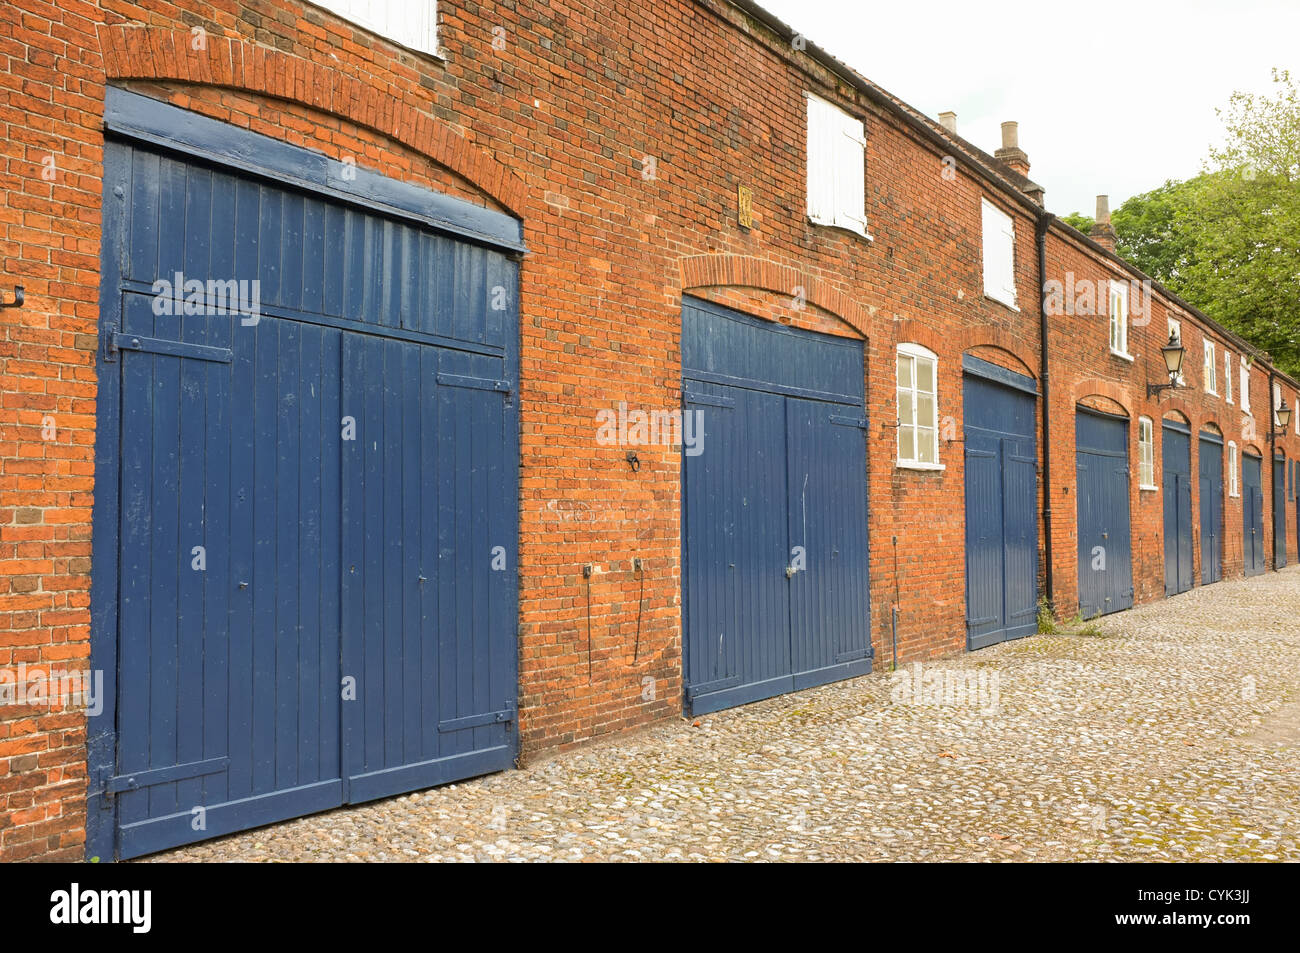 Large Blue Wooden Garage Doors, Which May Have Been The Old Stables And  Warehouses In